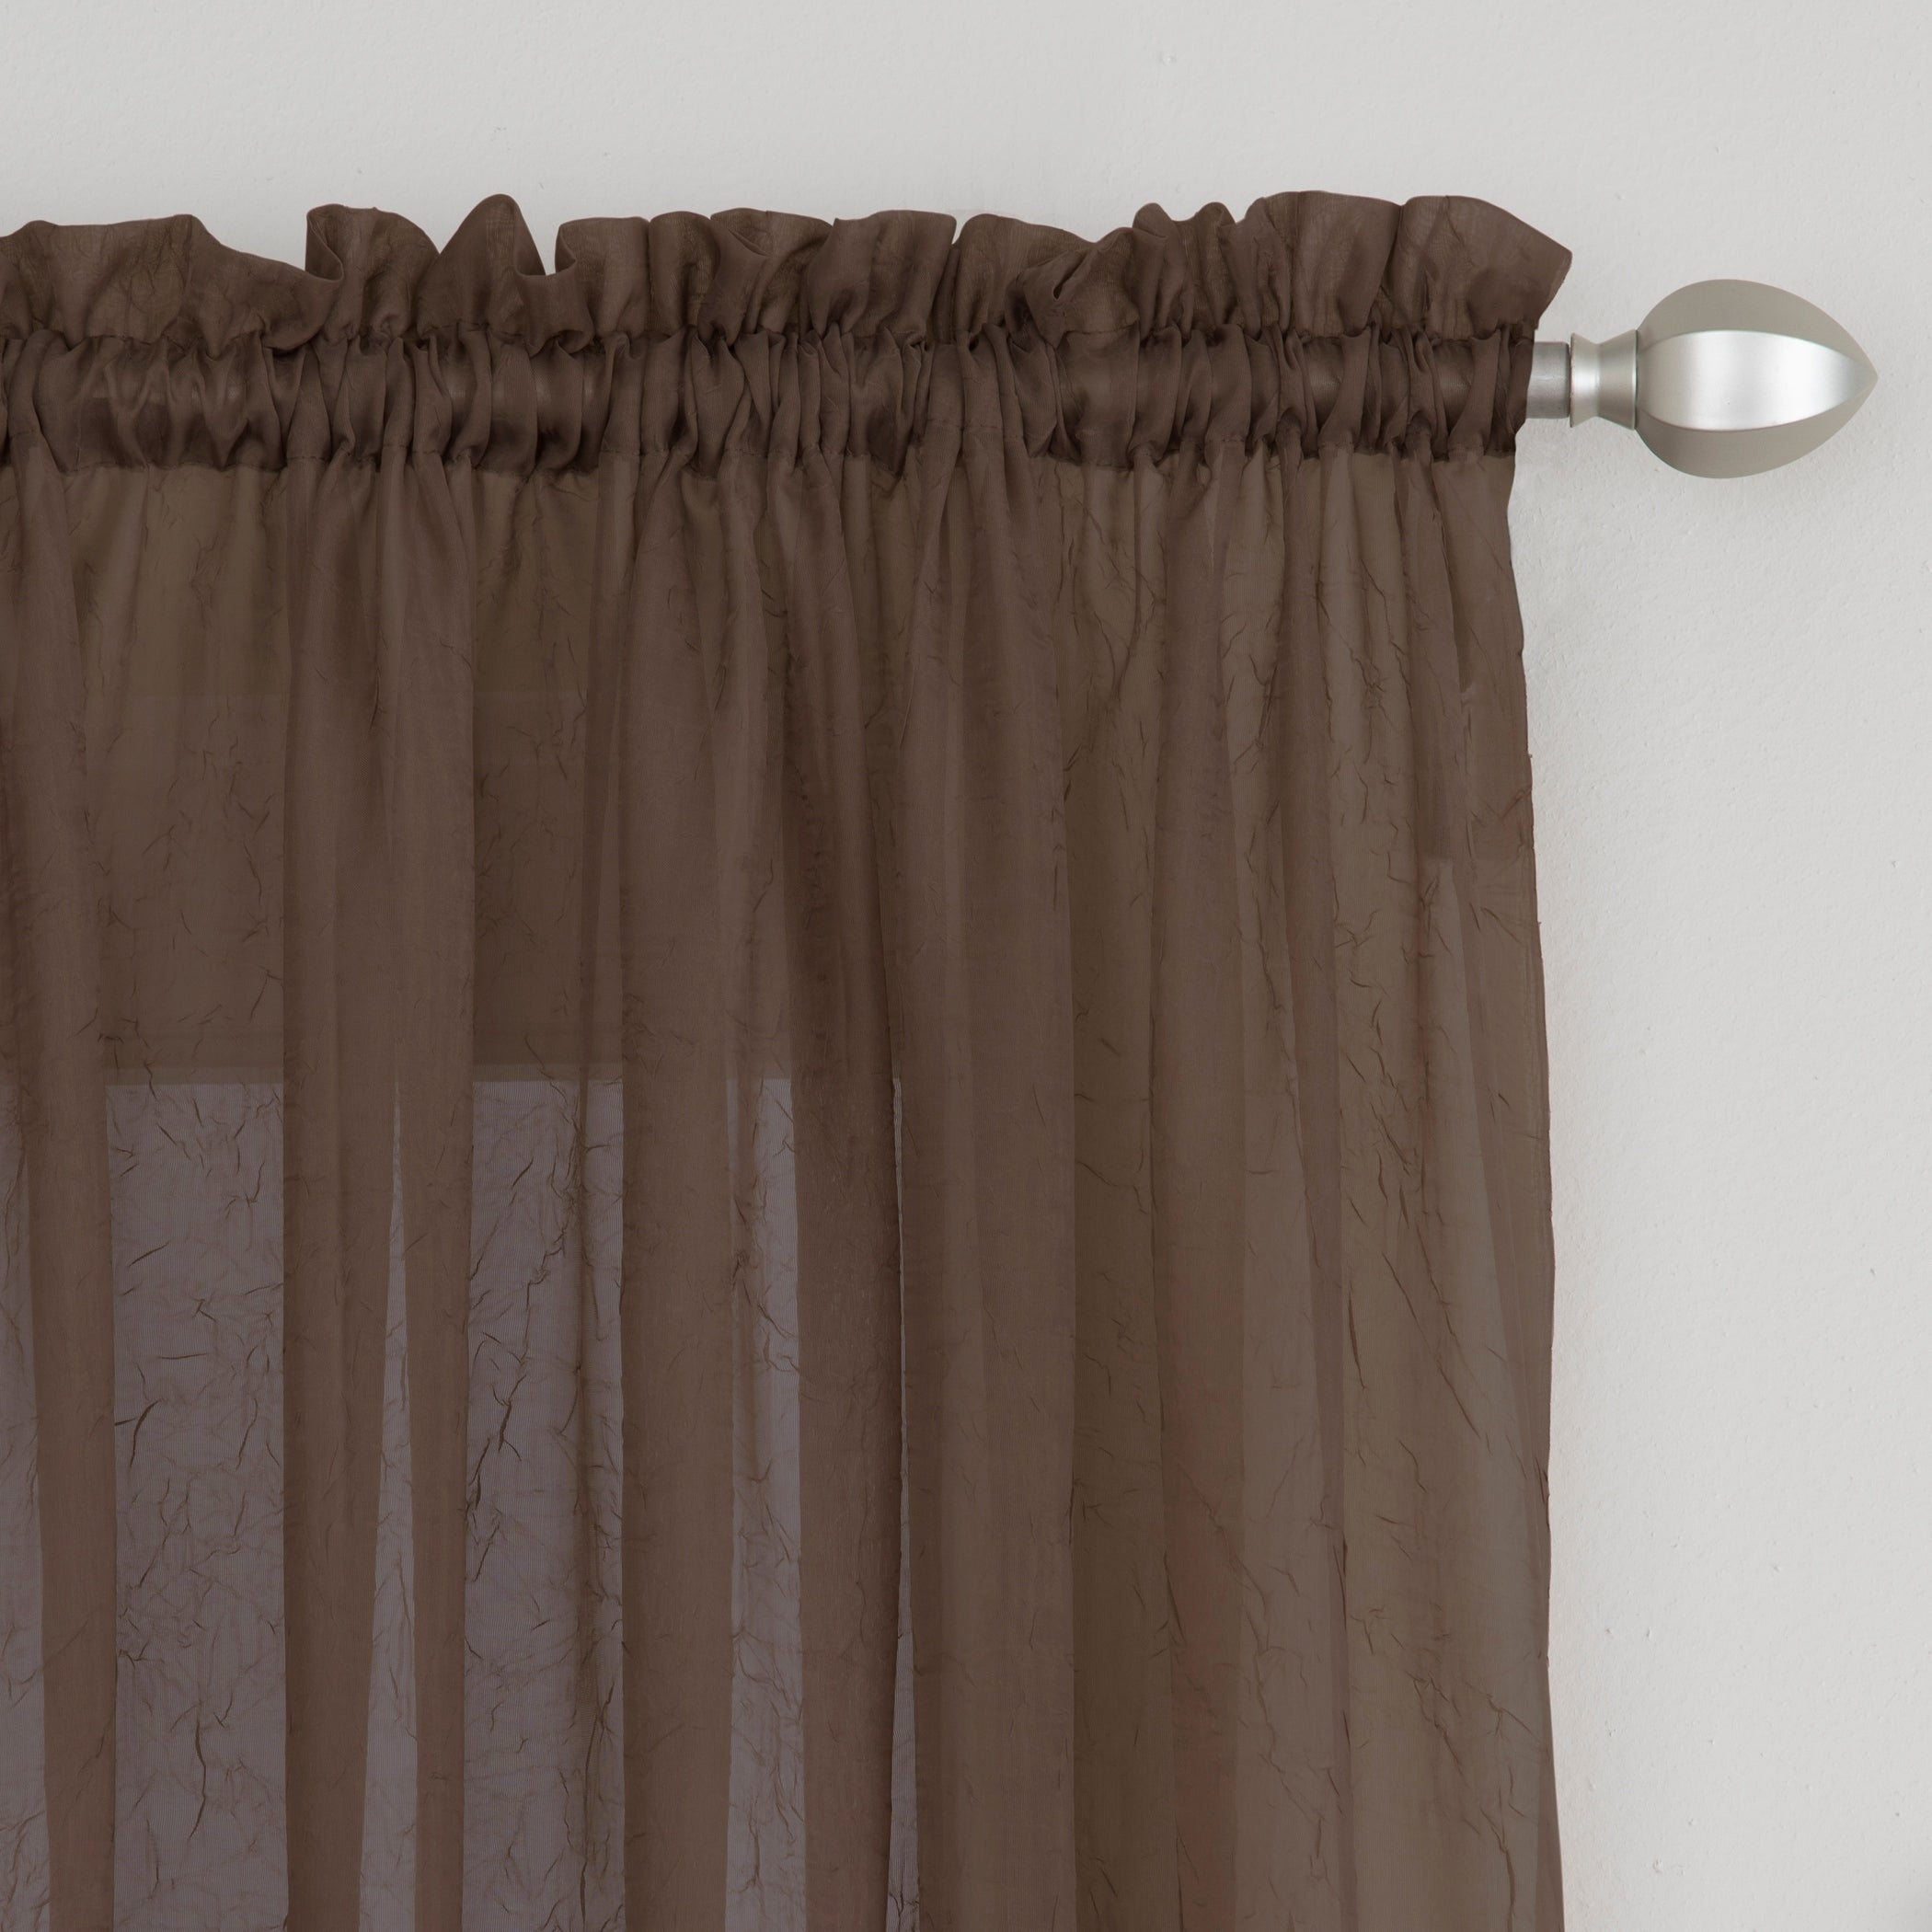 Miller Curtains Preston 84 Inch Rod Pocket Sheer Curtain Panel On Sale Overstock 12270107